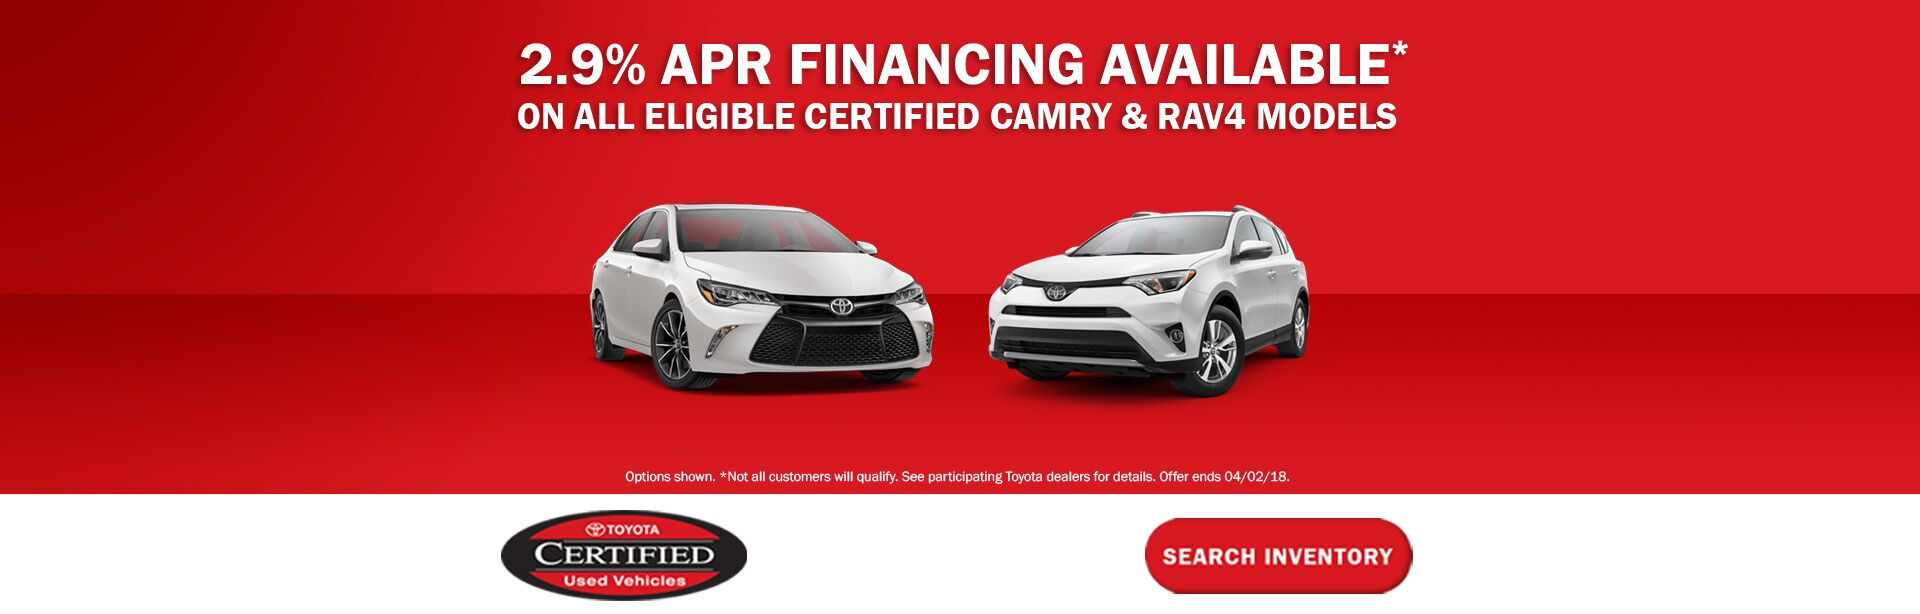 Toyota Certified Used Cars at Salinas Toyota